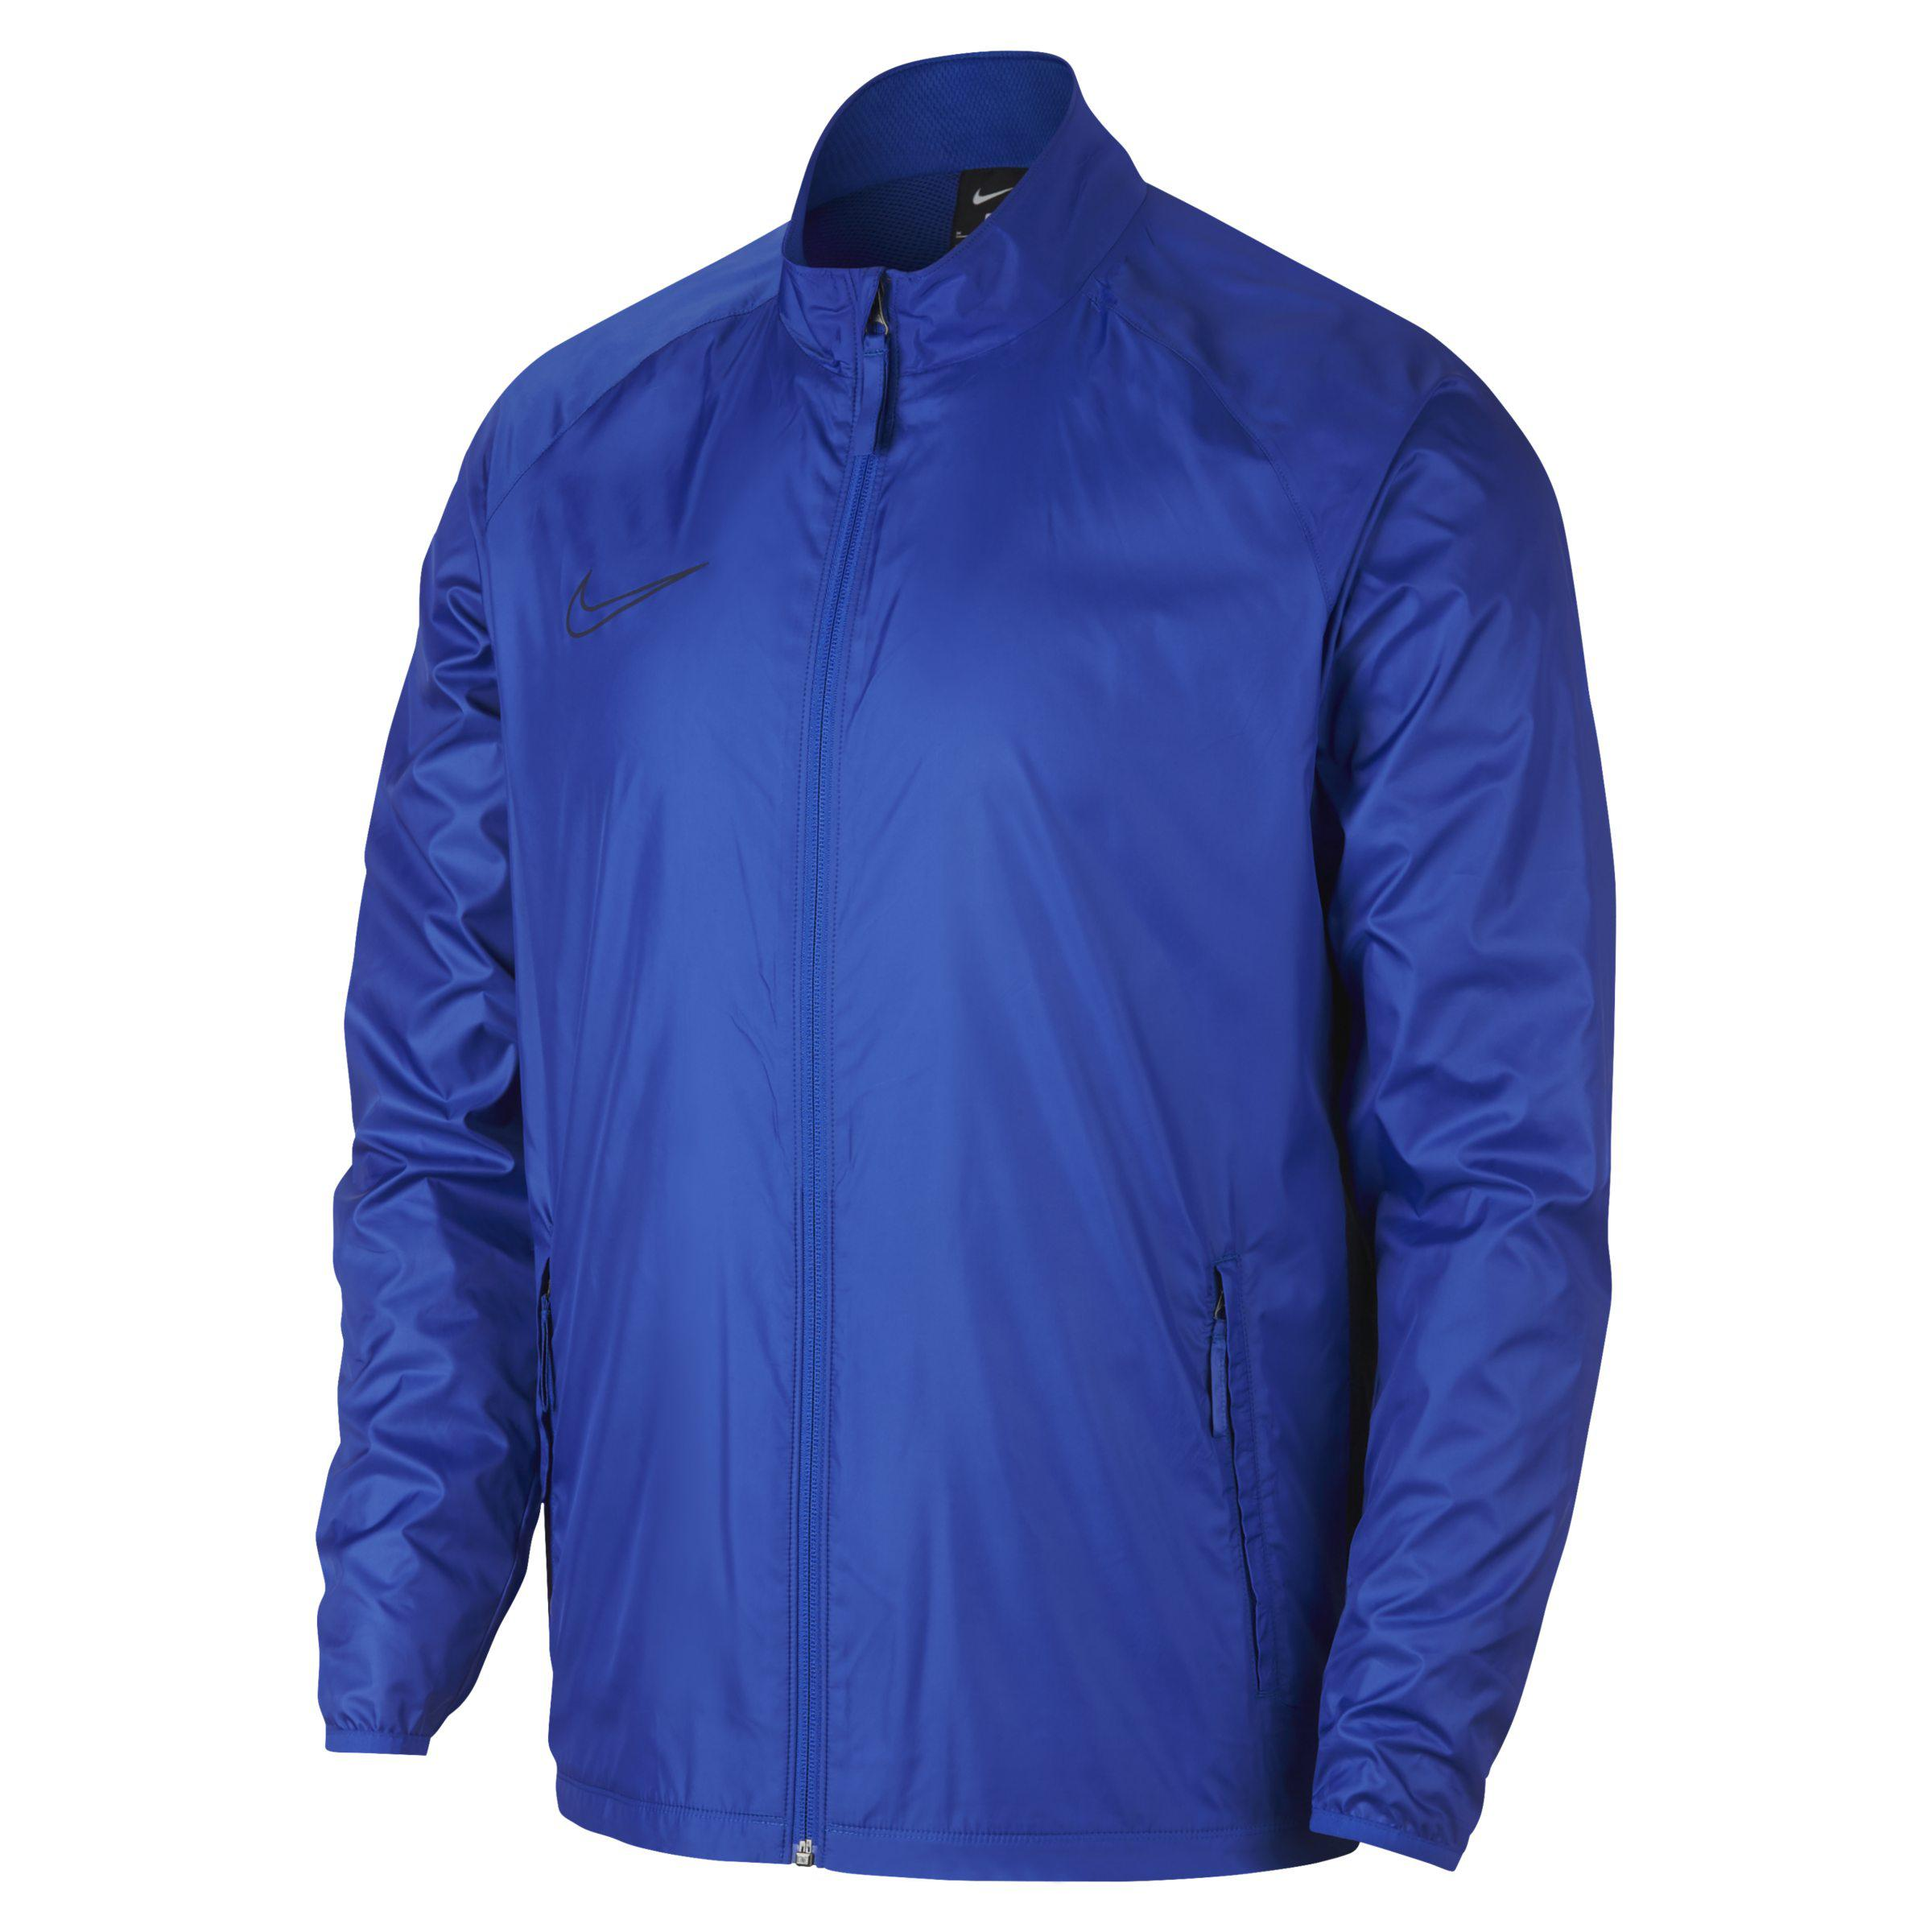 ca648592fb7 Nike Repel Academy Football Jacket in Blue for Men - Lyst